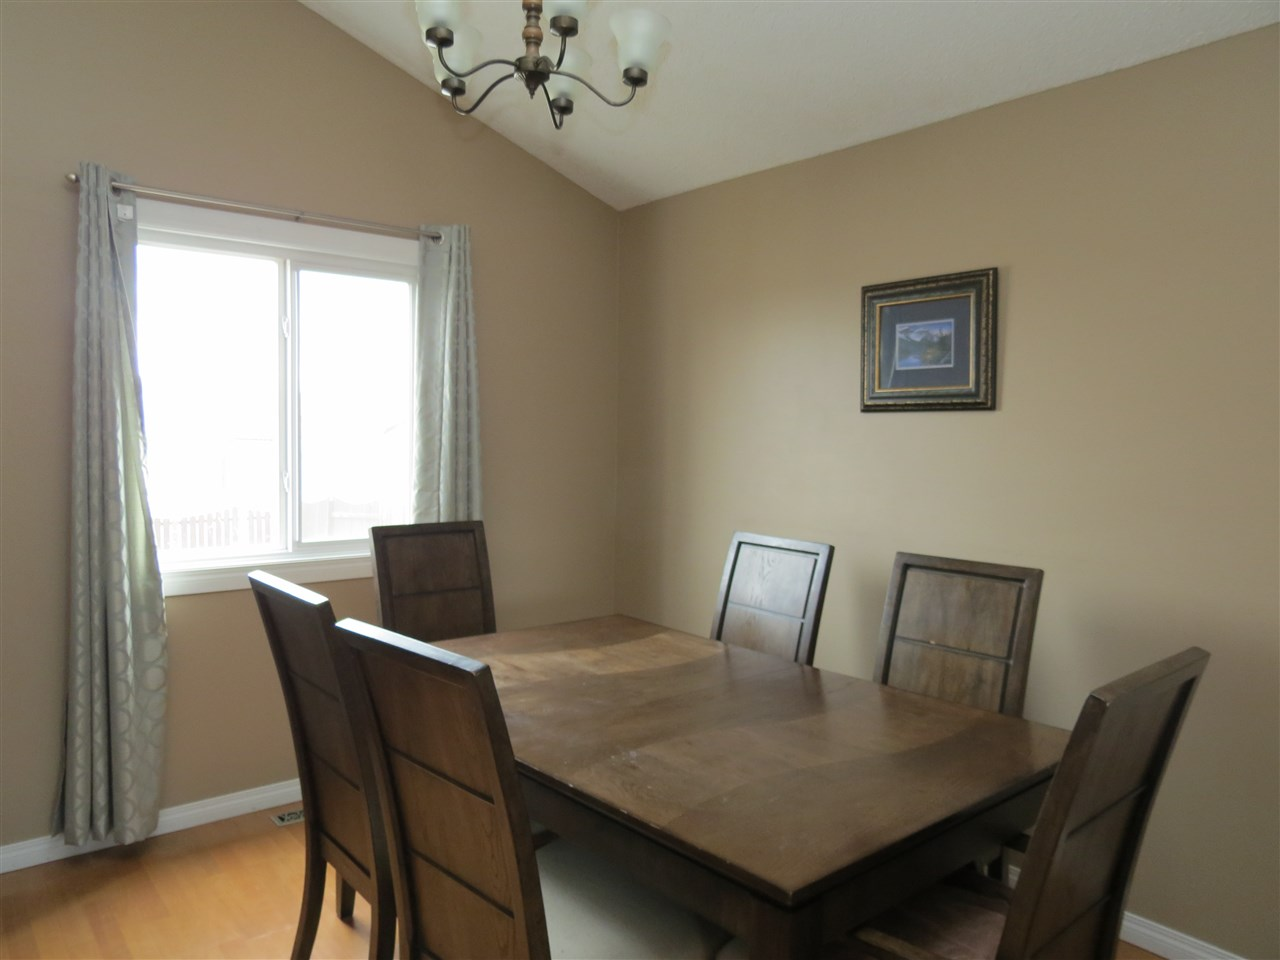 Photo 6: 9907 90 Street: Morinville House for sale : MLS(r) # E4057678